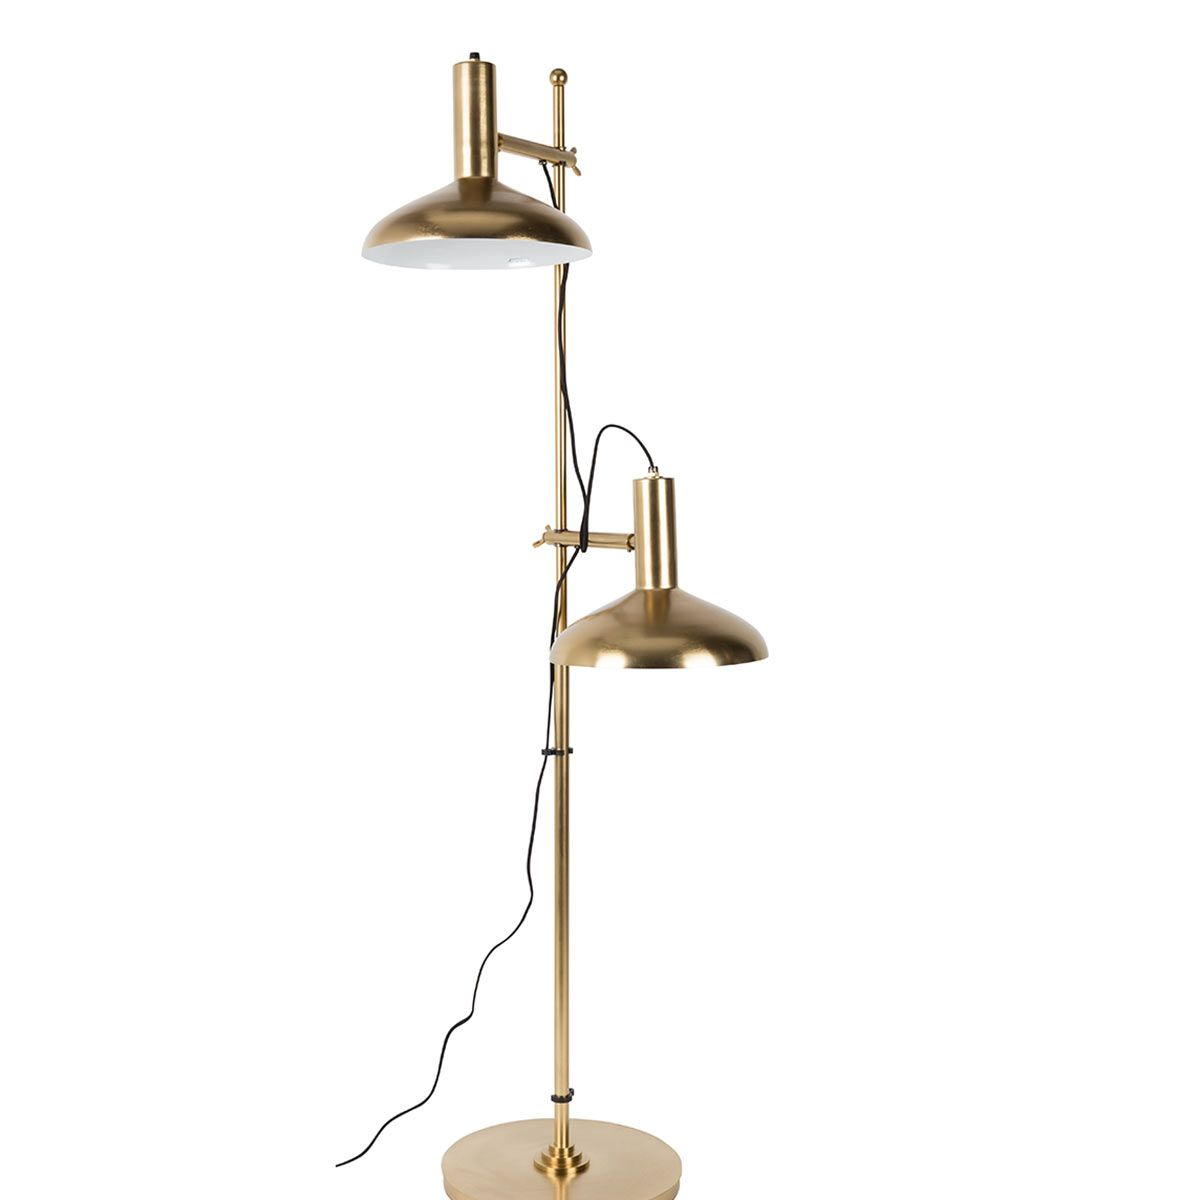 Lampadaire double liseuse en métal finition laiton Karish Dutchbone